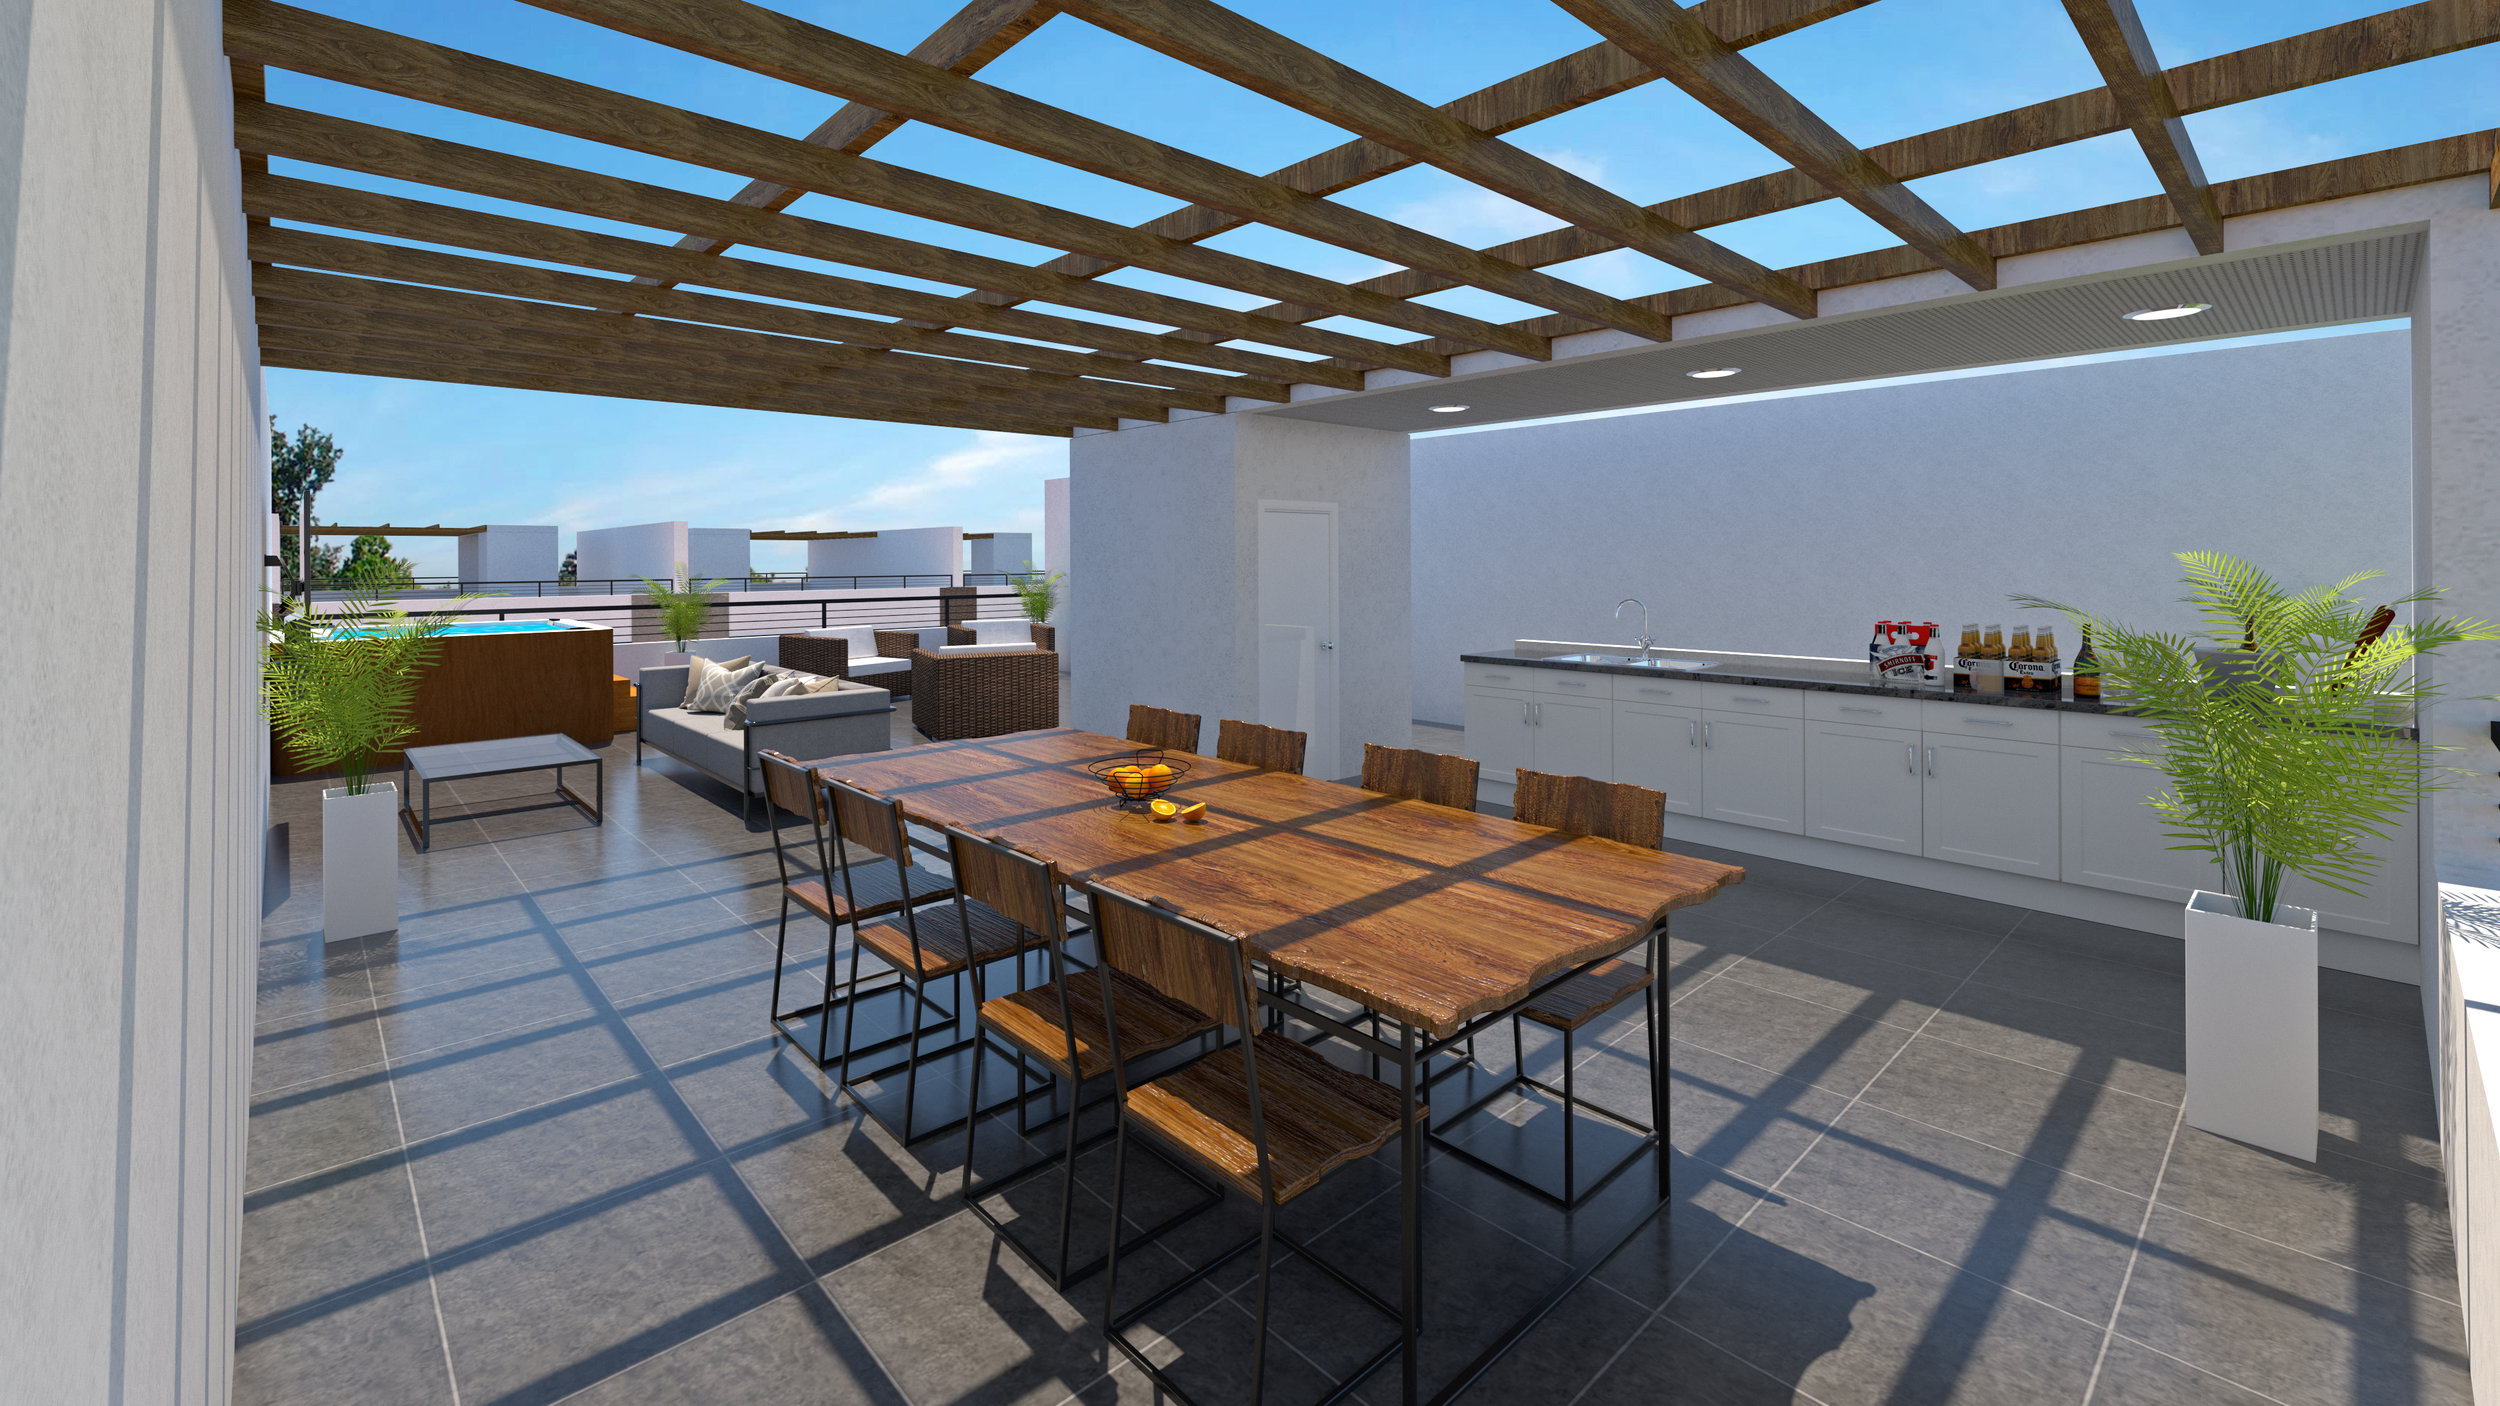 Private roofdecks with full kitchen capability